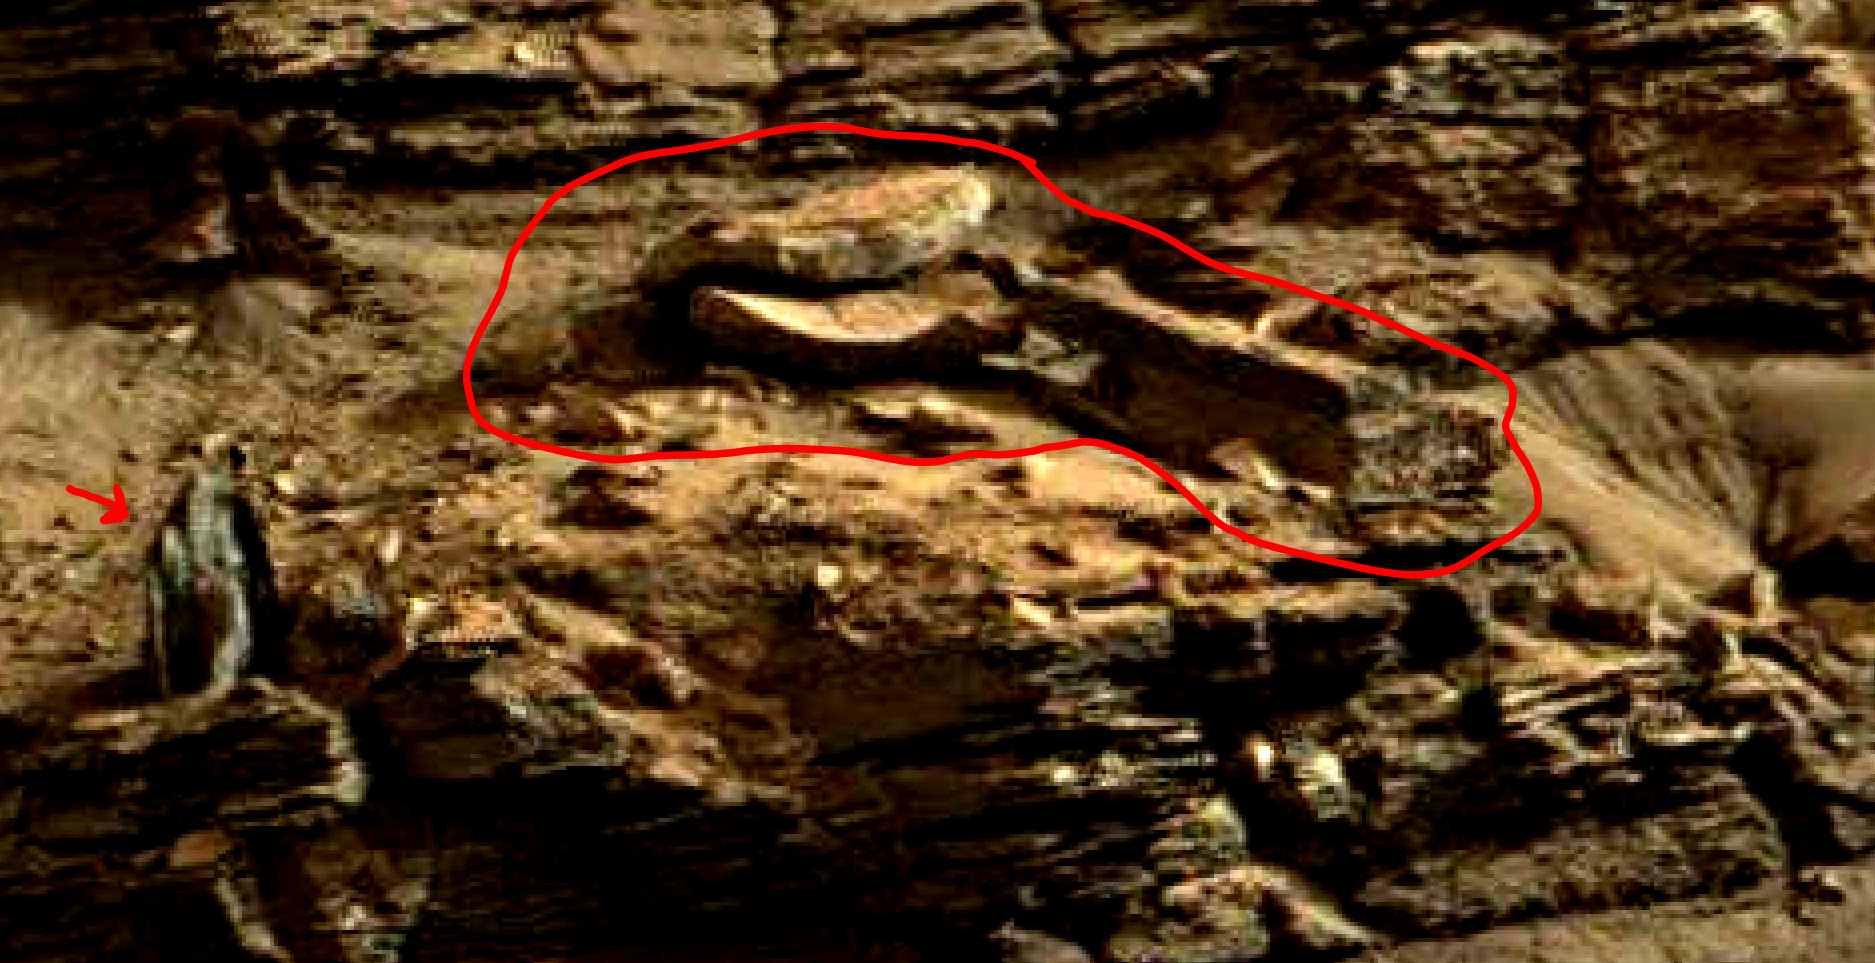 mars sol 1419 anomaly artifacts 13a was life on mars